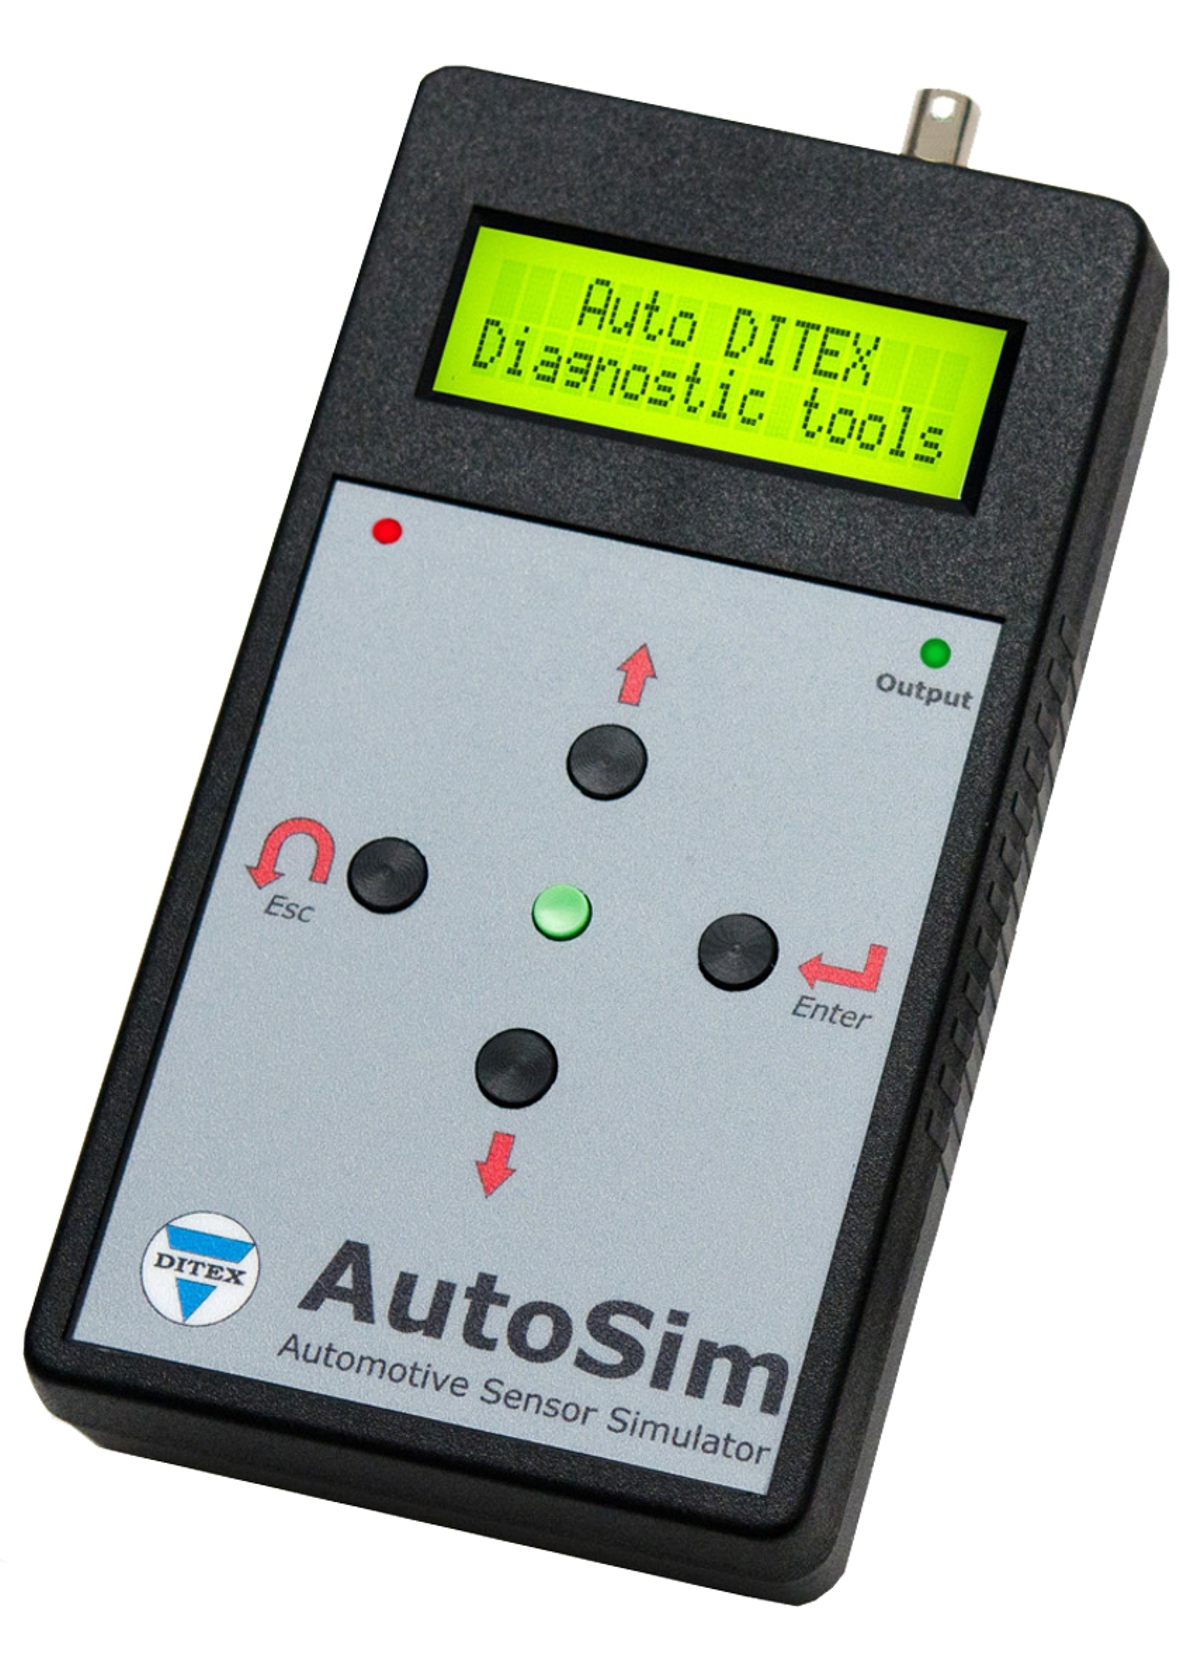 Automotive Sensor Simulator And Tester Ebay Oxygen 1 X Autosim Main Unit